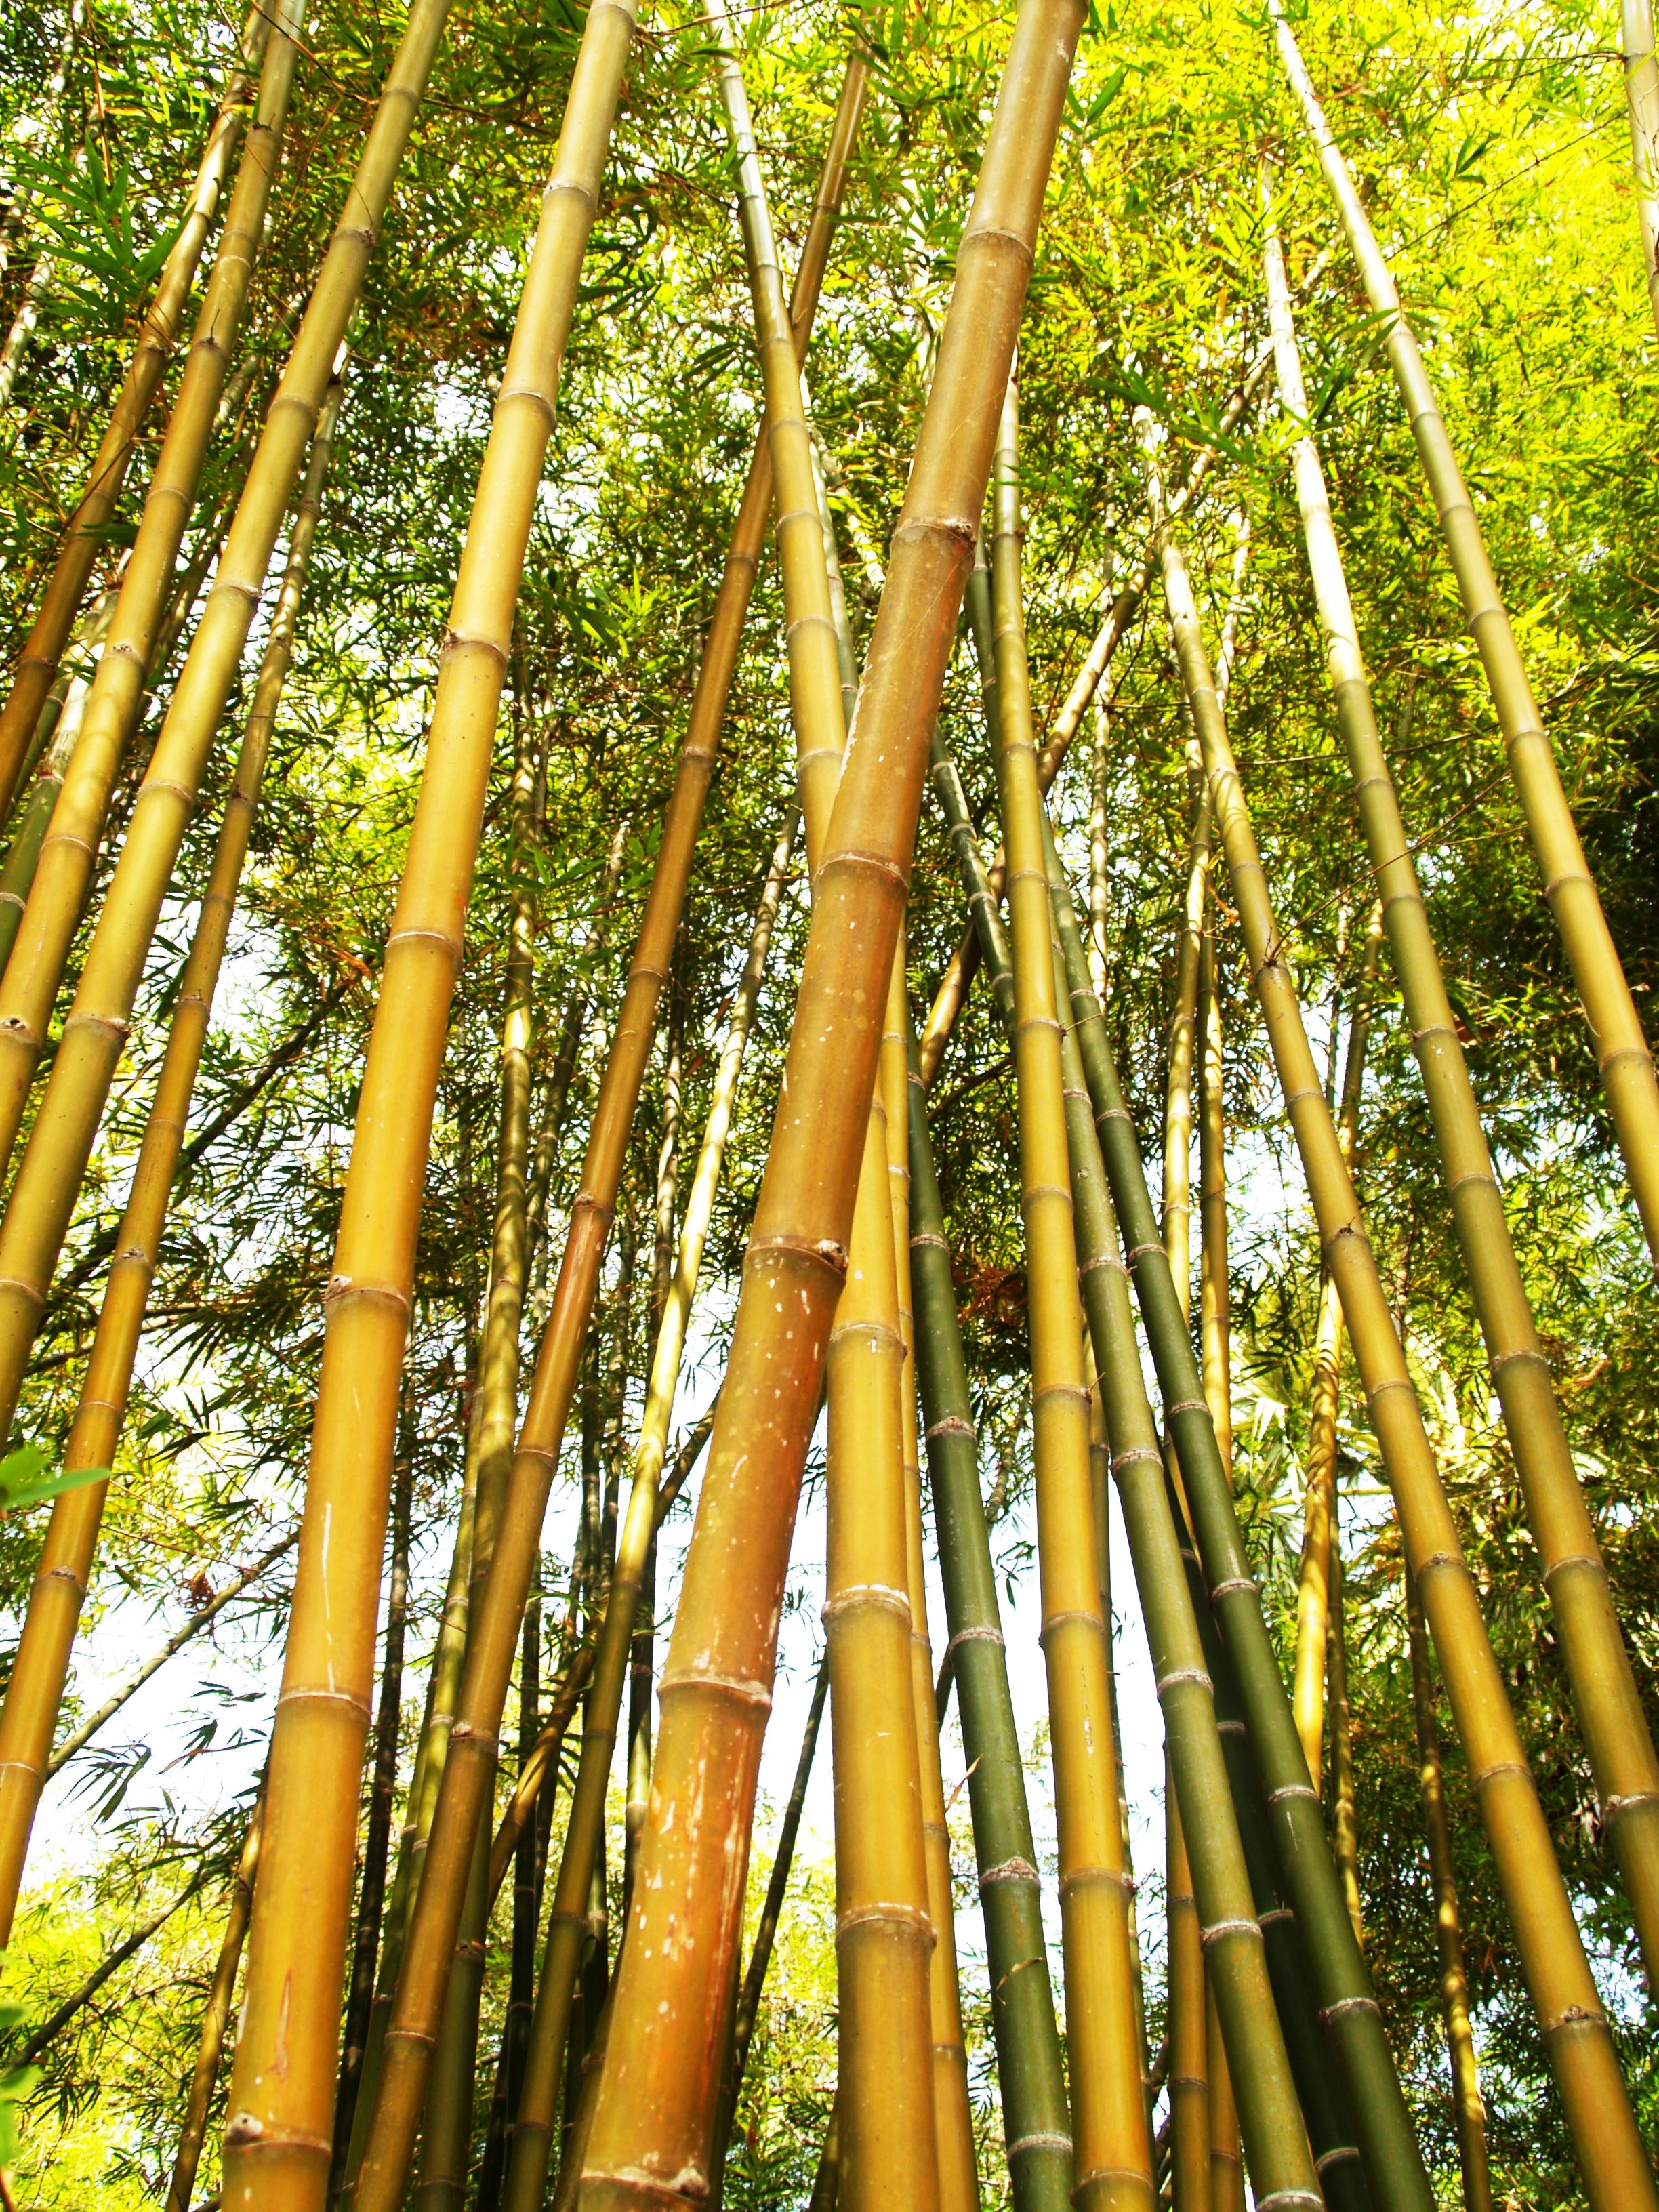 Bamboo Tree during Daytime, Asia, Leaf, Tropical, Plant, HQ Photo